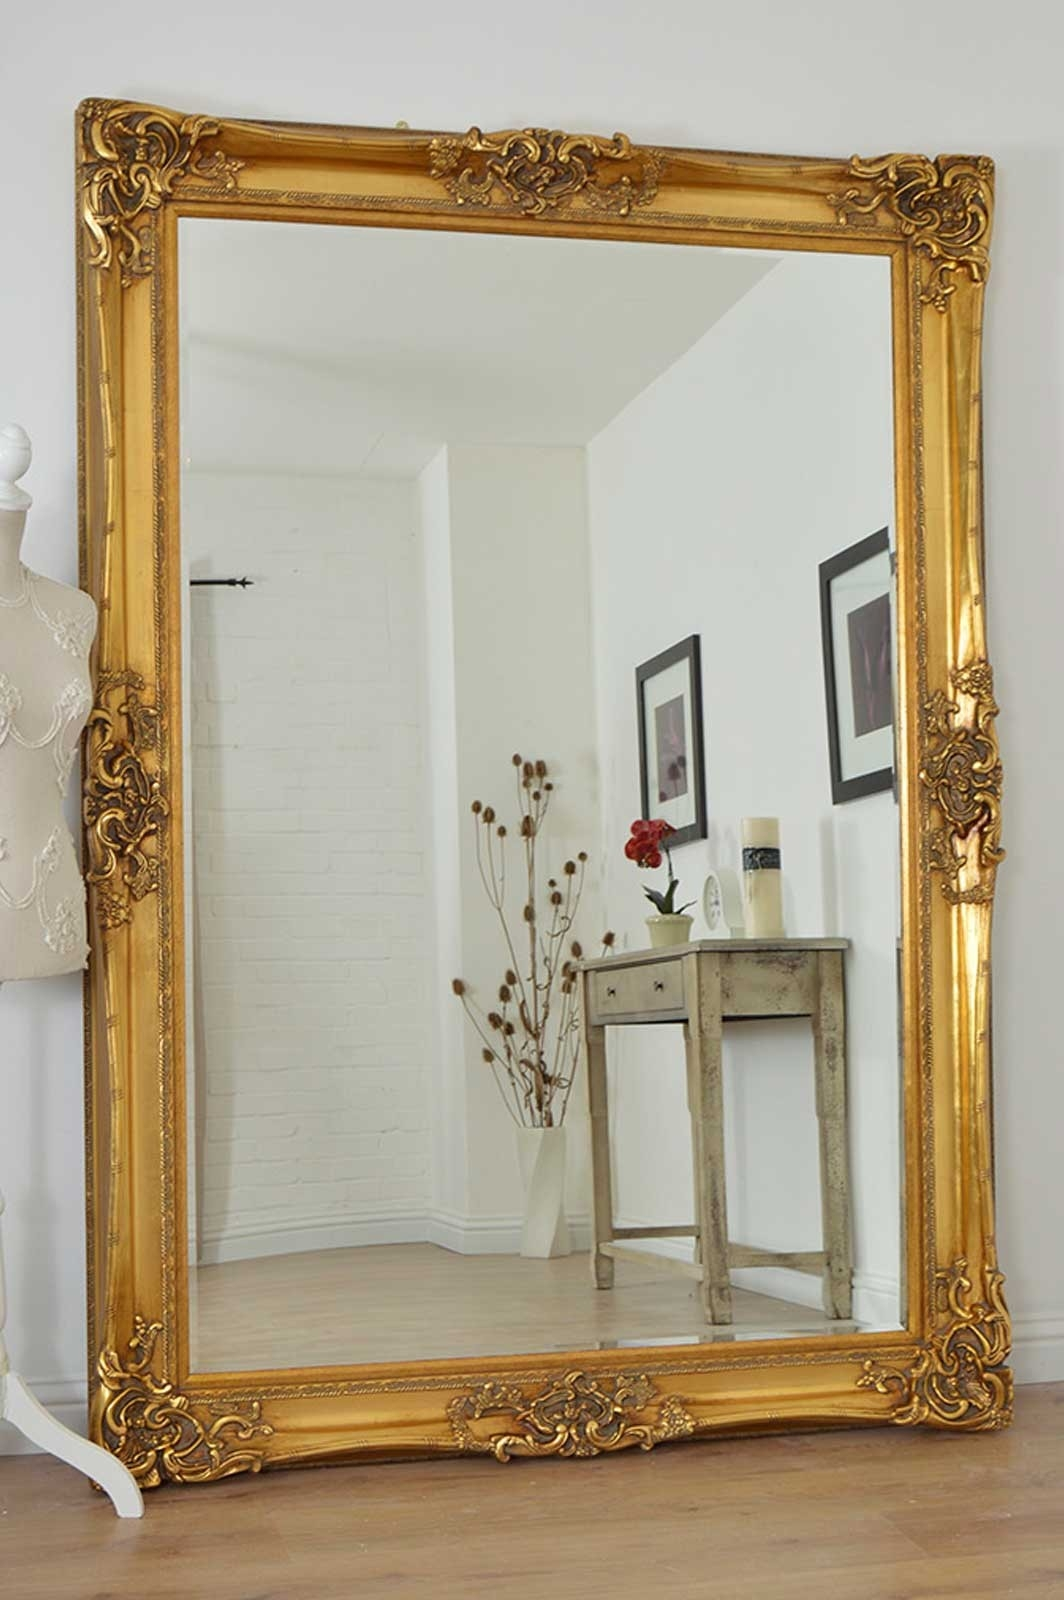 Large Gold Very Ornate Antique Design Wall Mirror 7ft X 5ft 213cm Intended For Rococo Floor Mirror (Image 11 of 15)